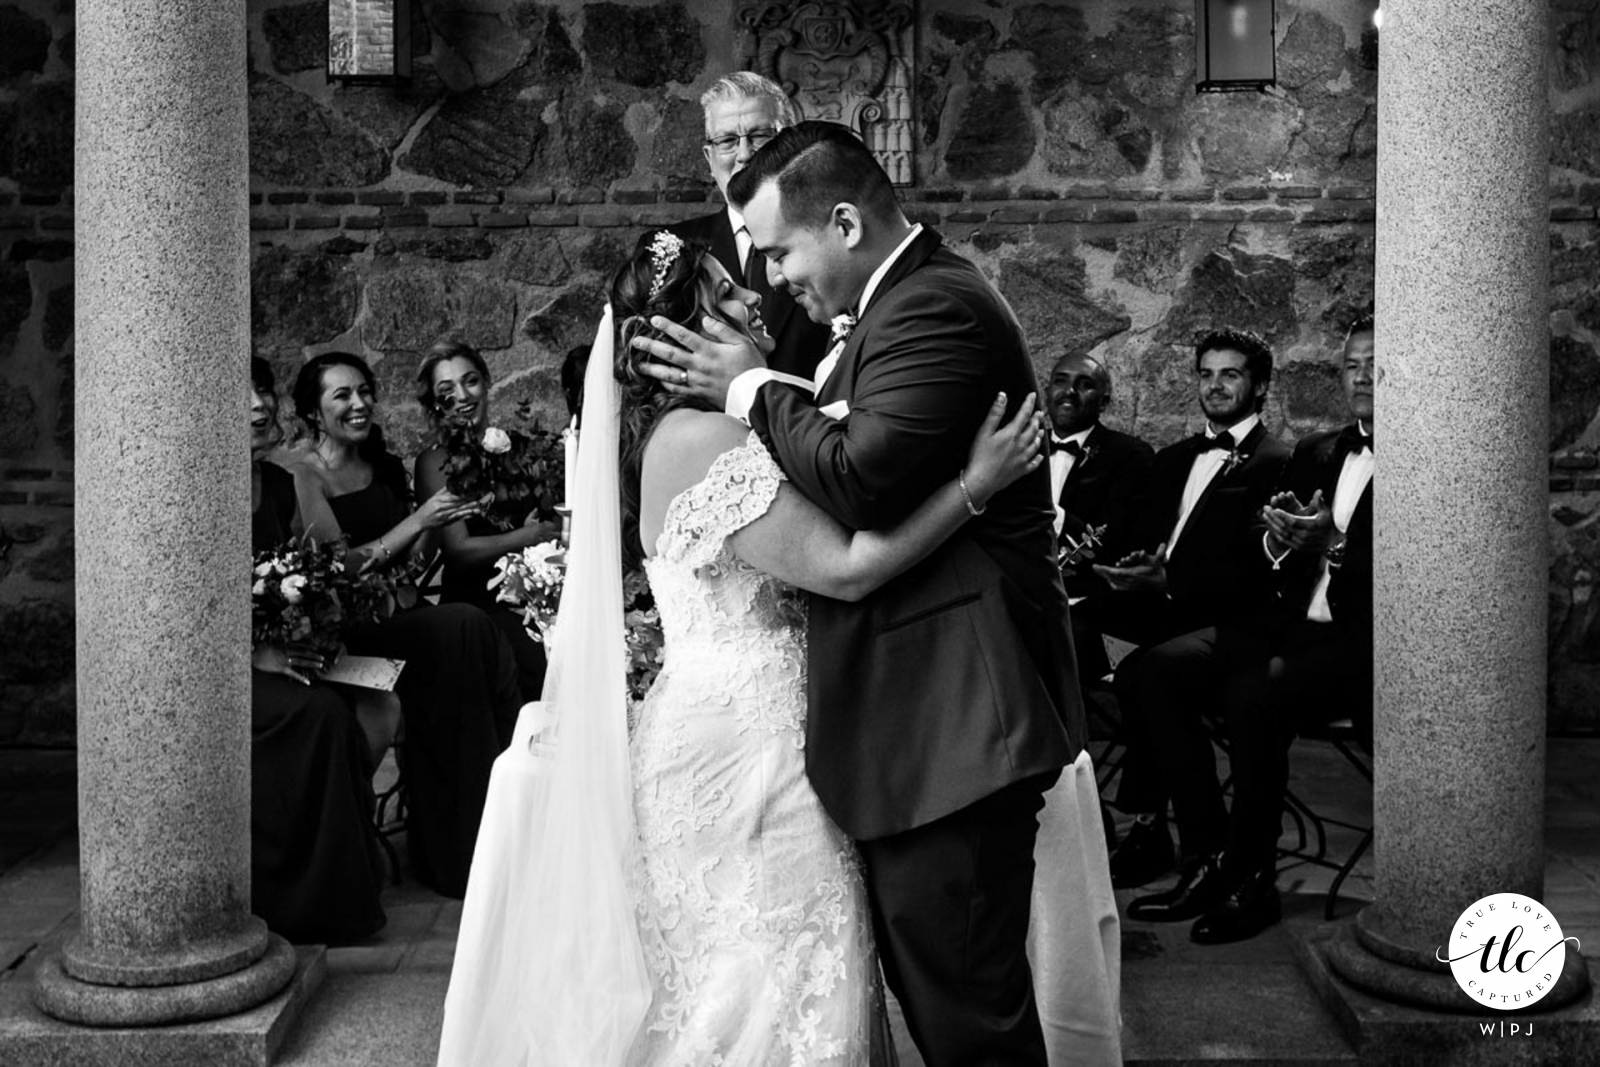 Toledo - Castilla La Mancha - Spain BW photo from a wedding moment of the First emotional real moment after marriage